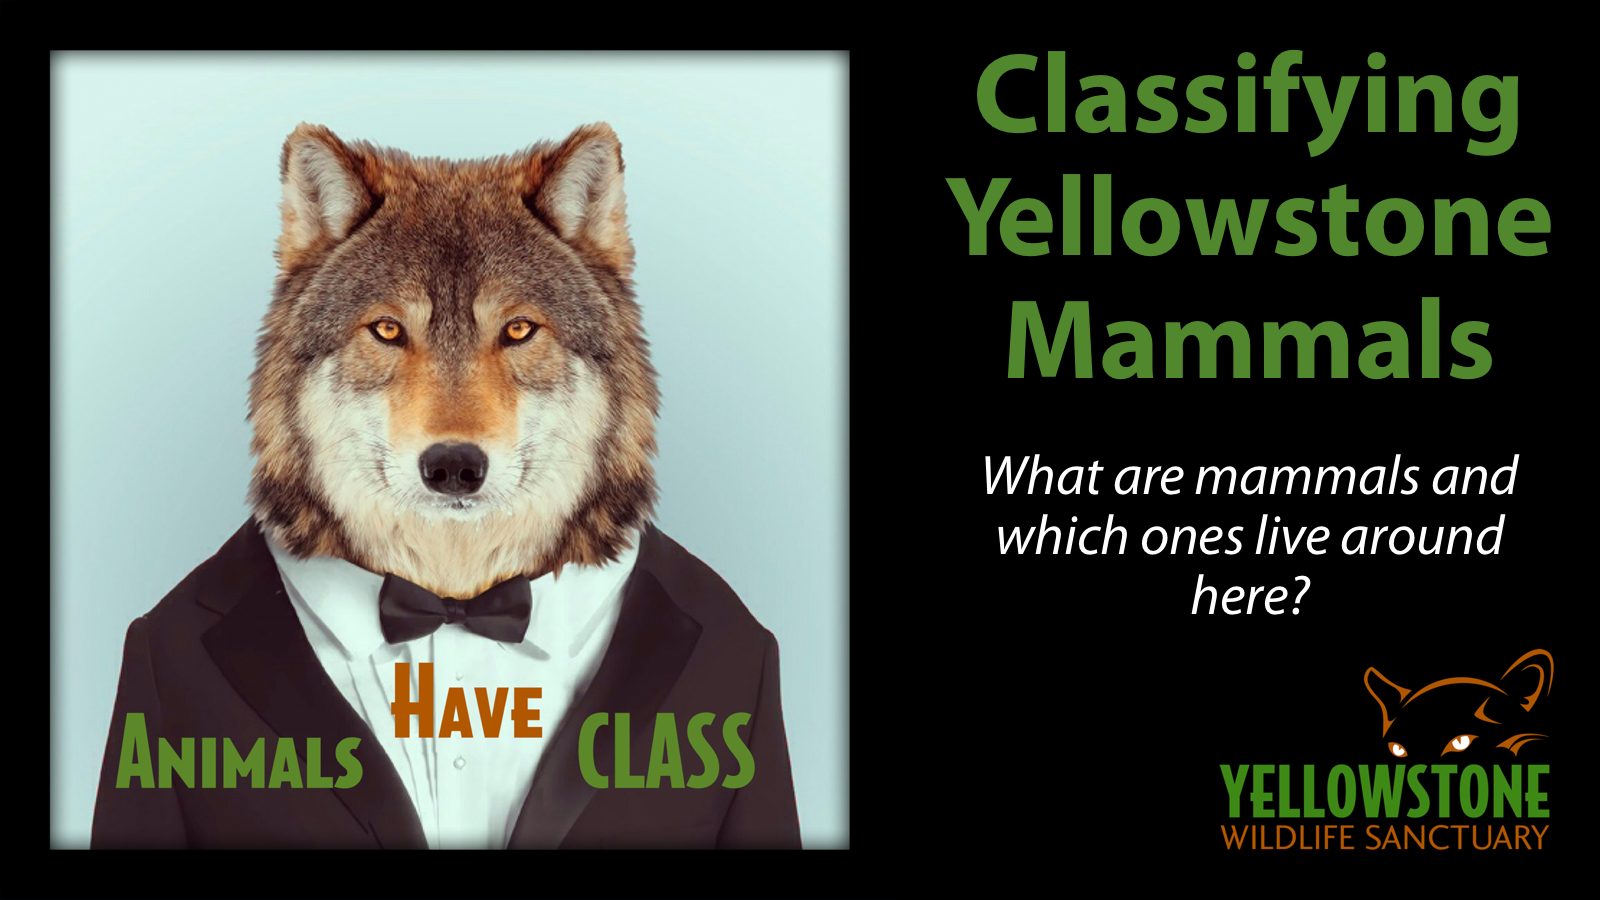 In this class, students will learn the basics of taxonomy, understand the difference between the five major classifications of vertebrates, and explore the mammals that share our ecosystem with us.